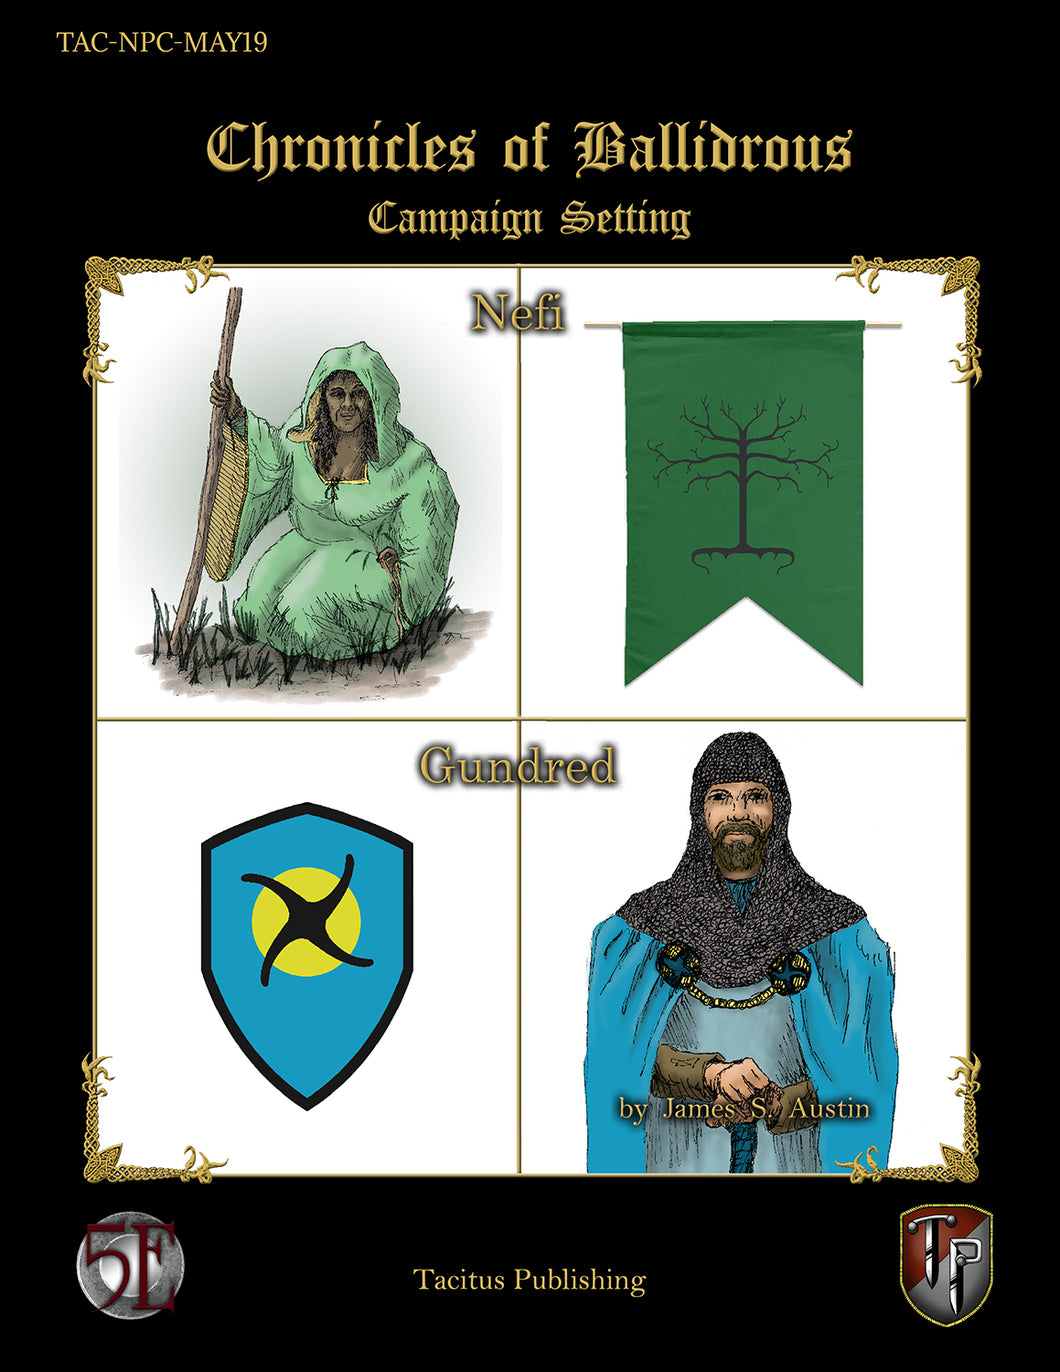 Chronicles of Ballidrous - NPCs - Nefi and Gundred (PDF)